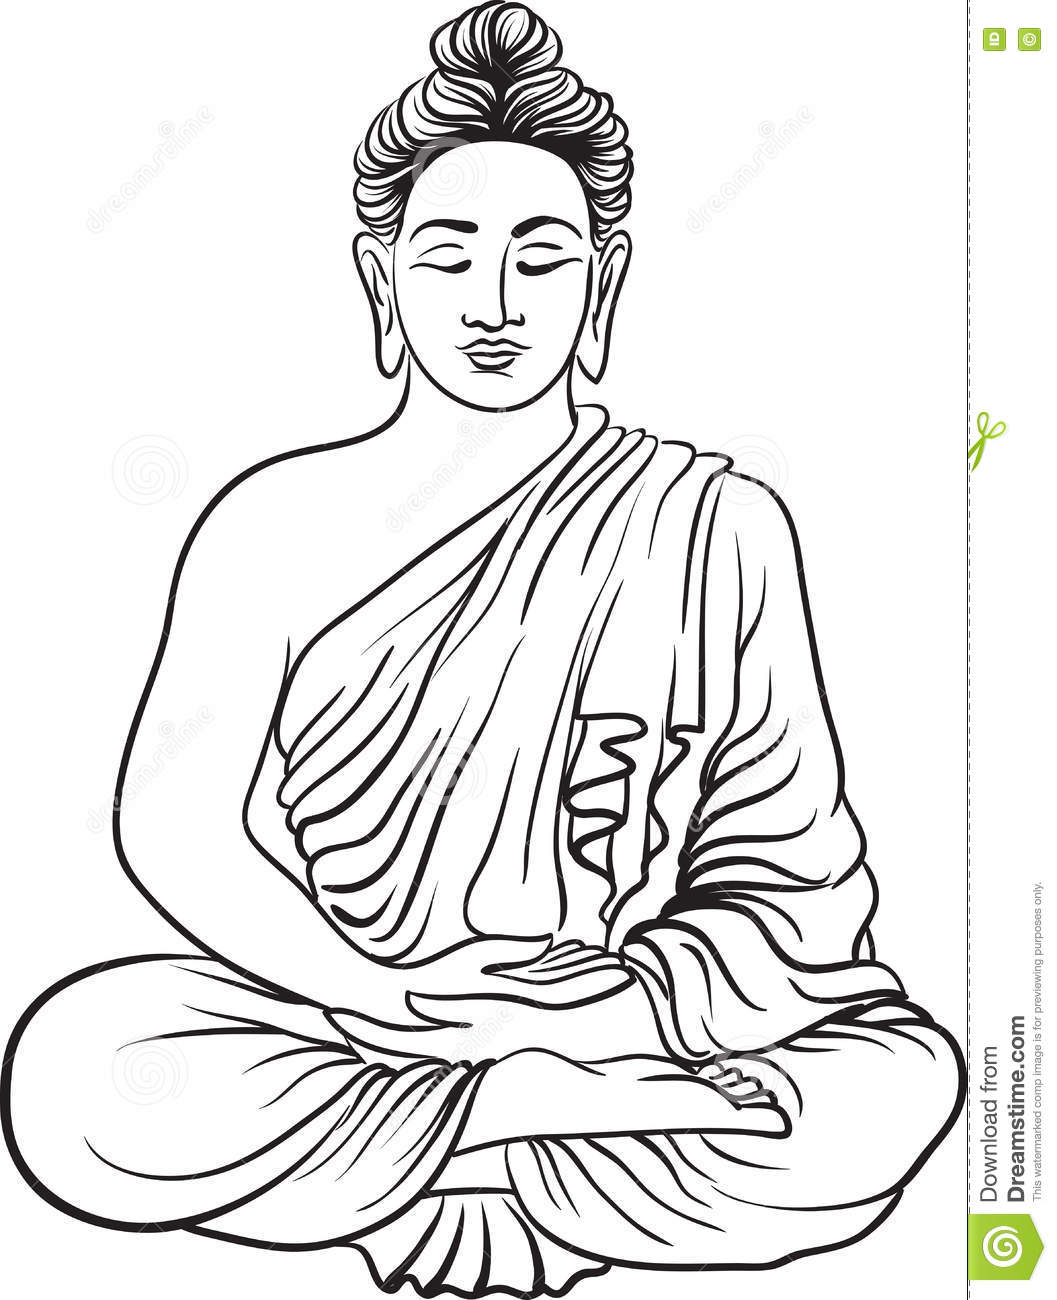 Drawing of a buddha statue stock vector illustration of illustration 80420436 - Dessin de bouddha gratuit ...